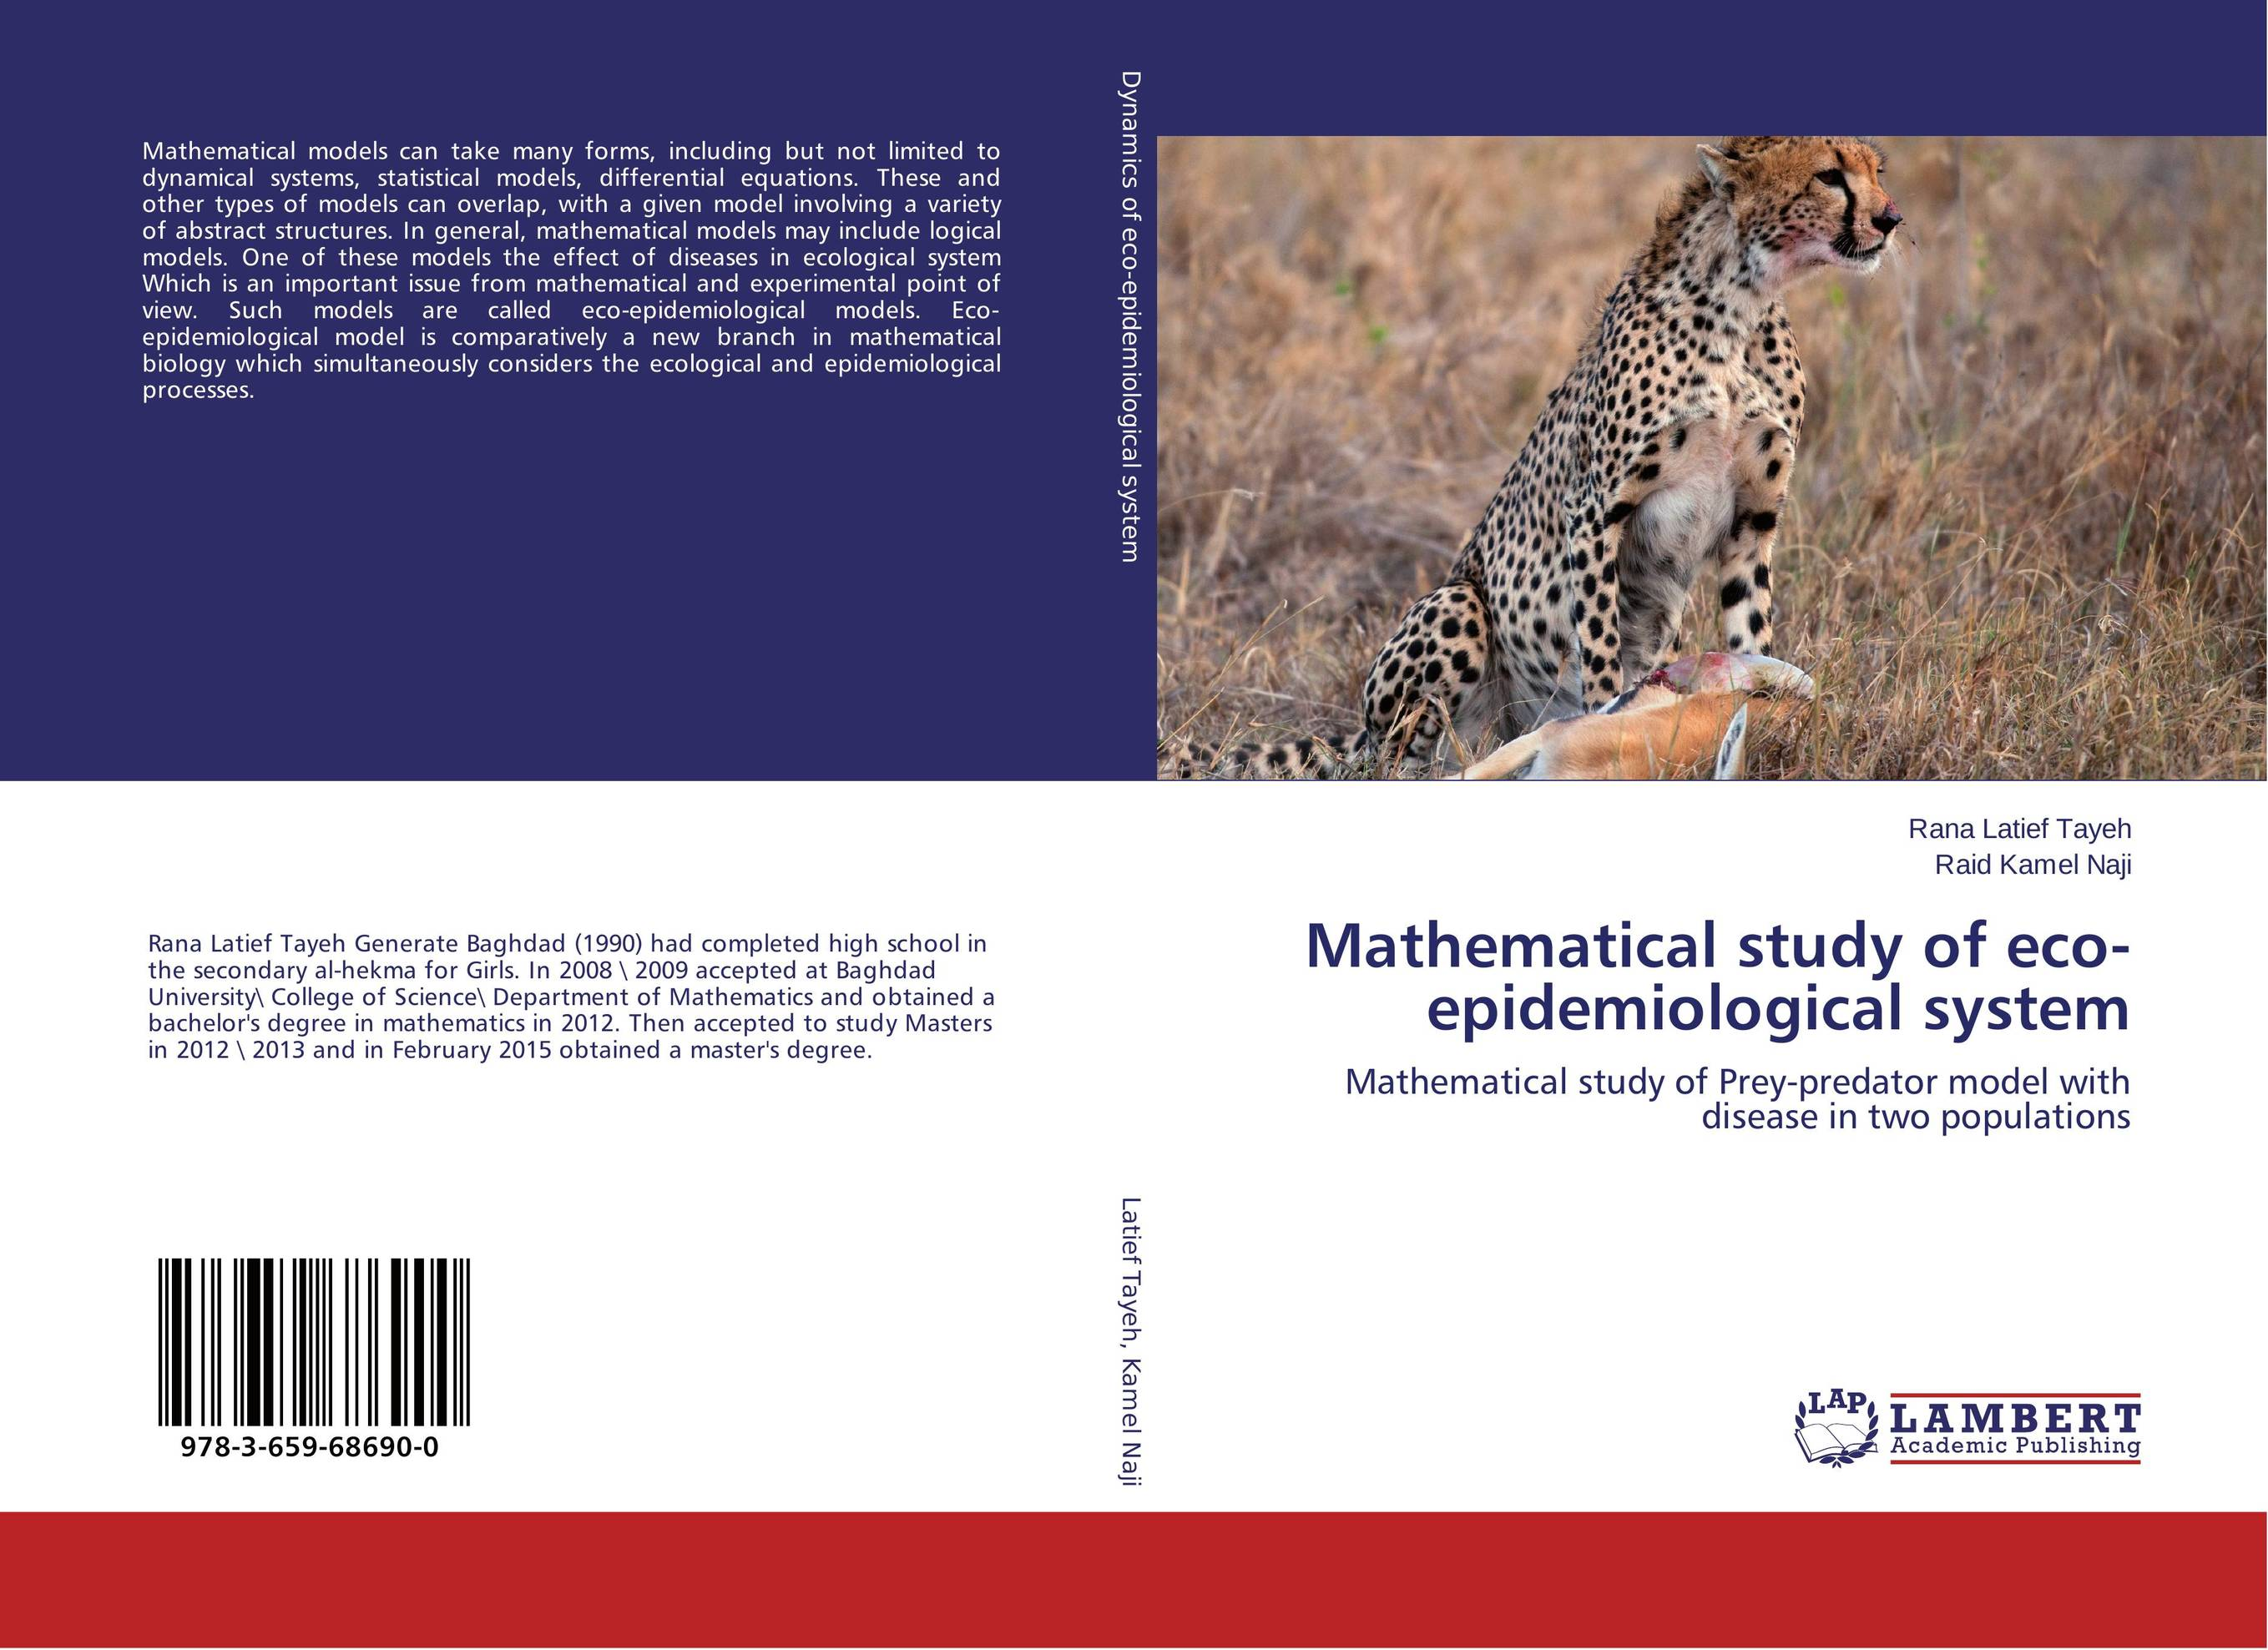 Mathematical study of eco-epidemiological system postmortem epidemiological profile of burn cases